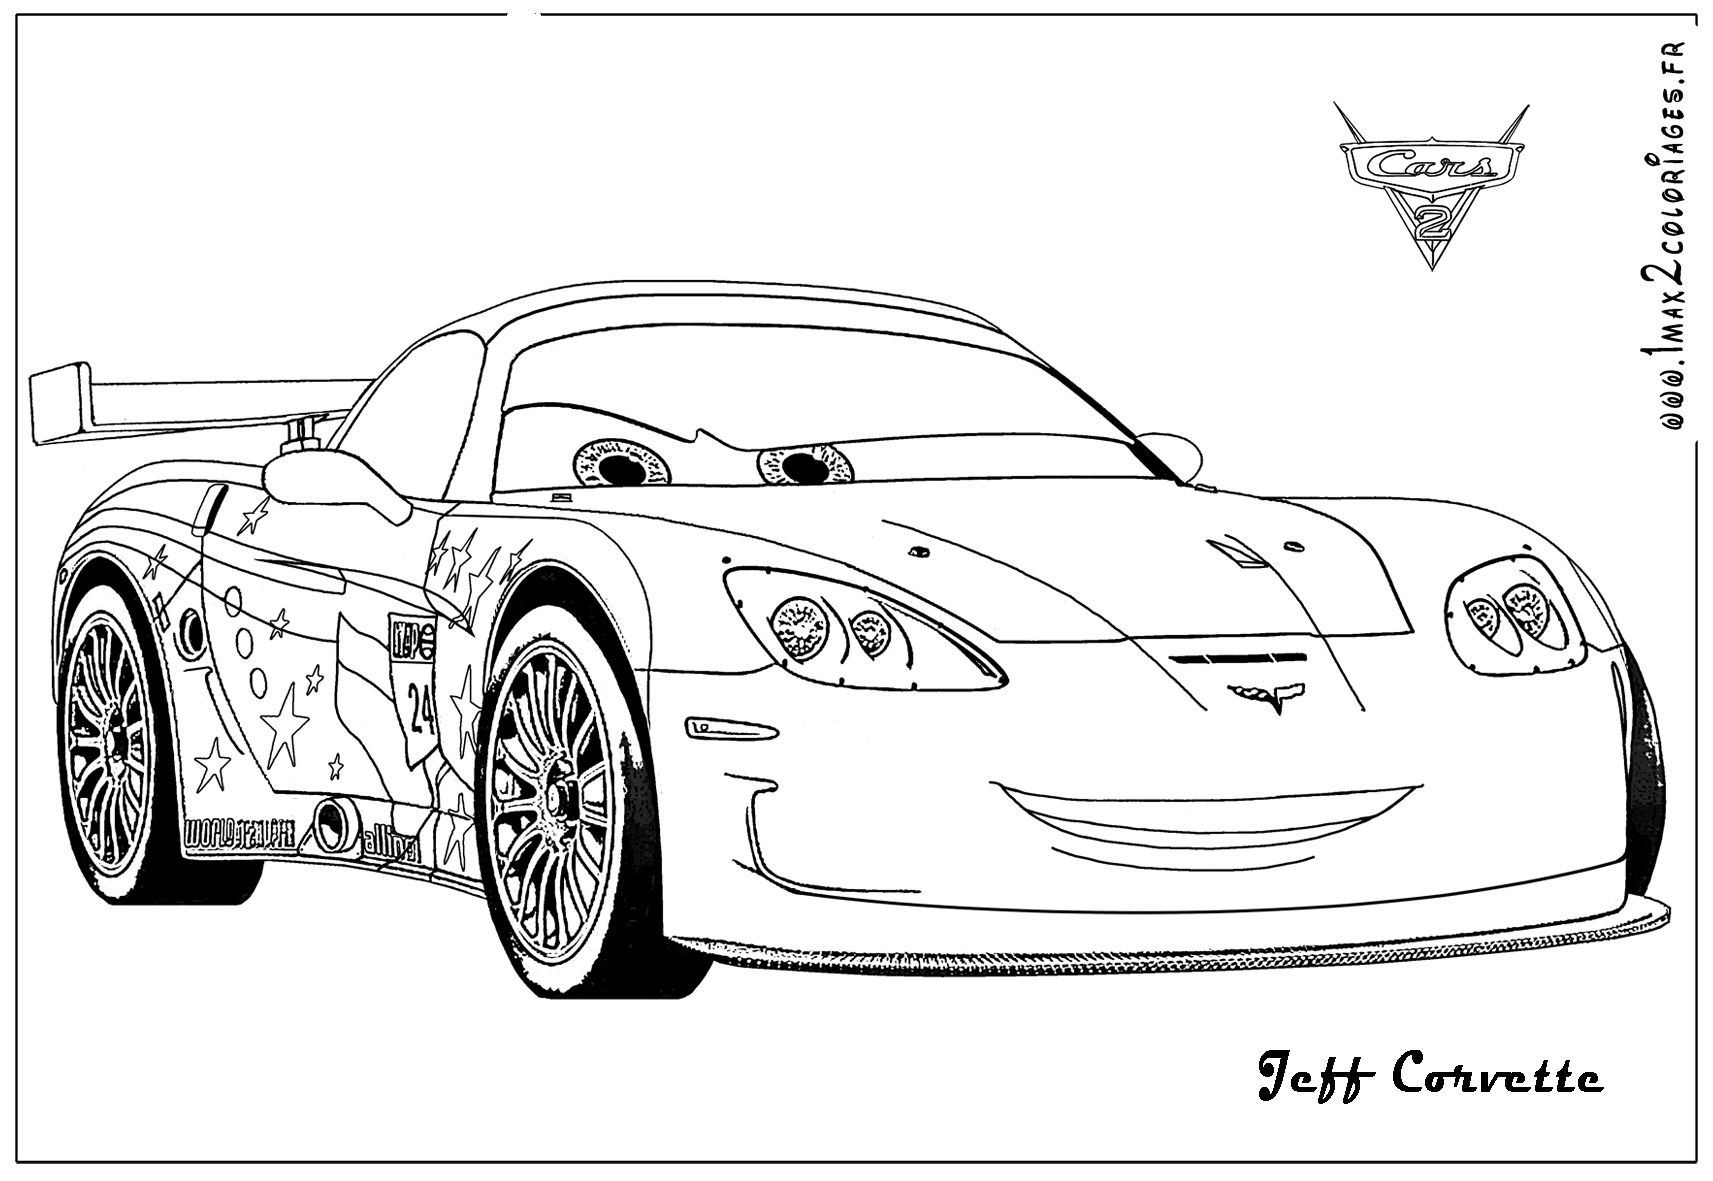 Cars 2 Jeff Corvette Coloring Page Coloring Pages Cars Coloring